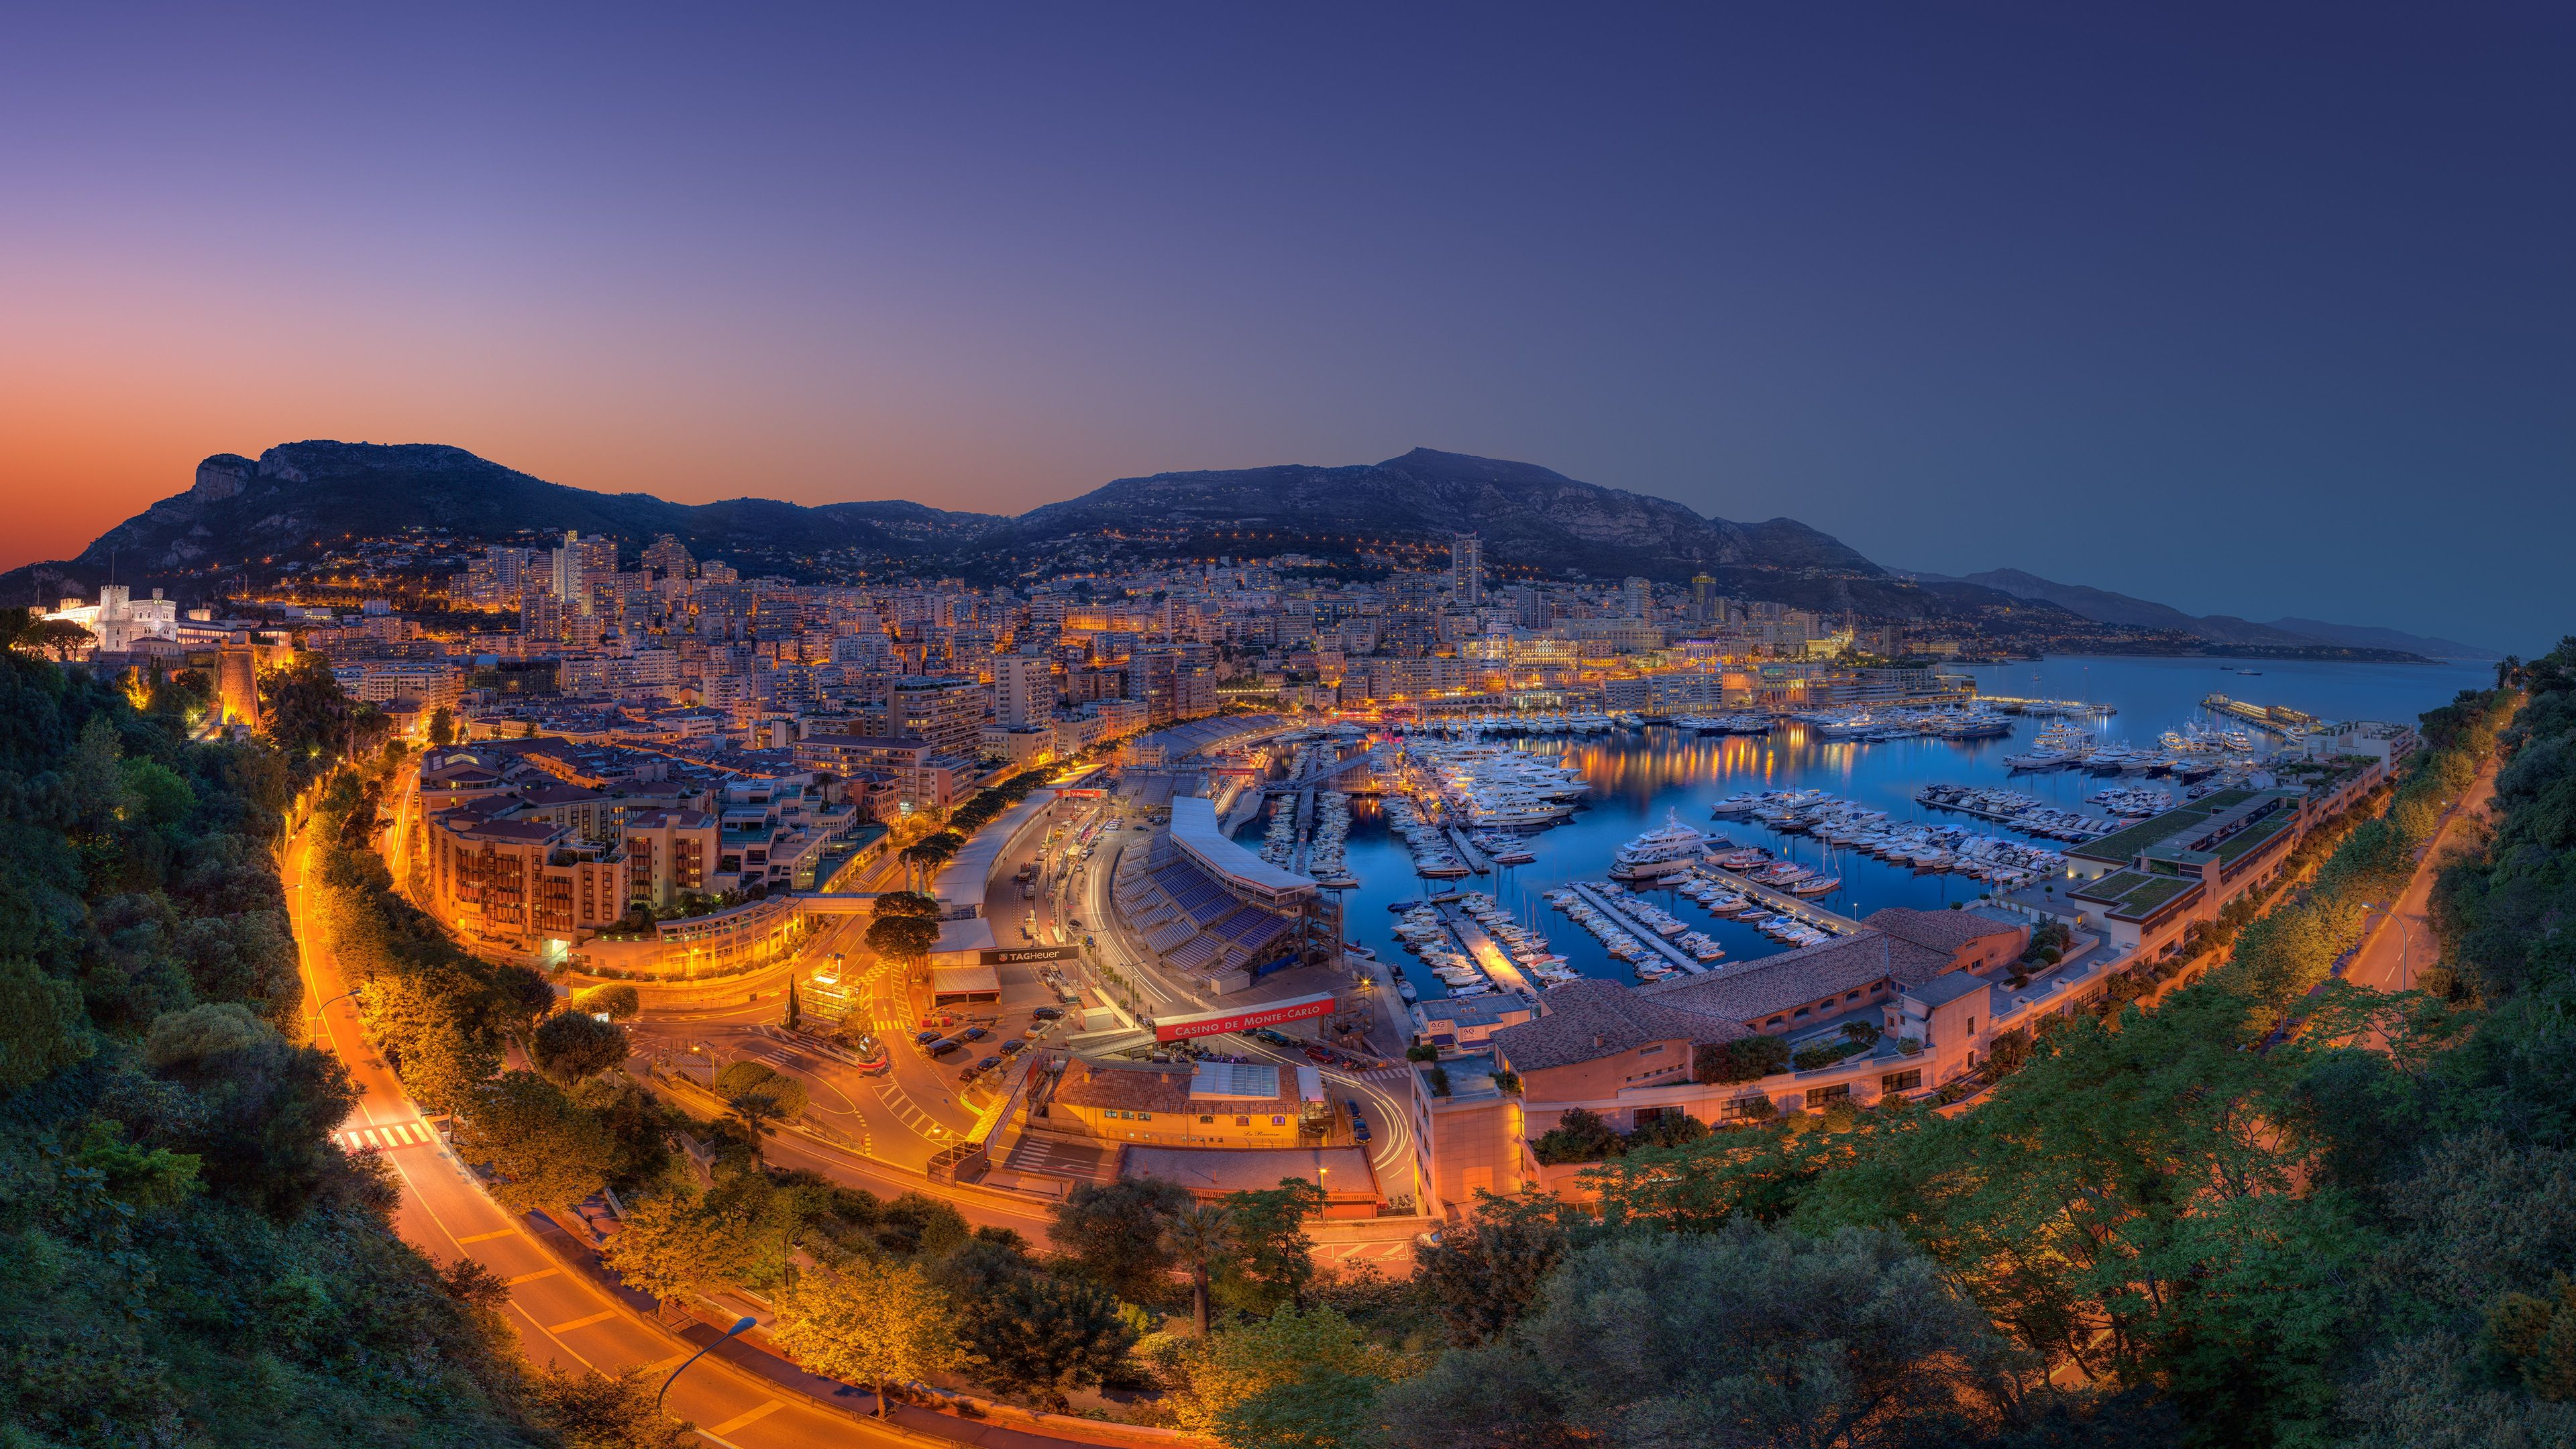 4K Wallpaper Monaco, Ipad air wallpaper, Iconic landmarks